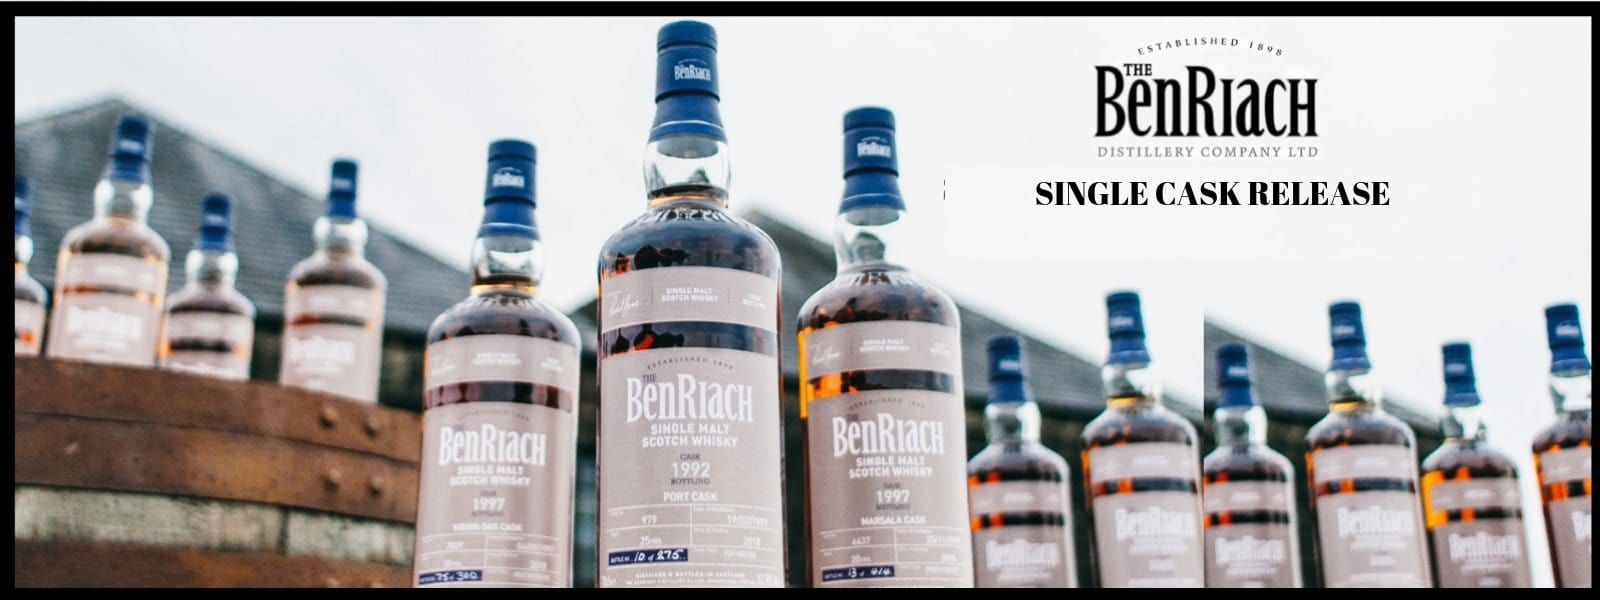 Benriach Single Cask Release